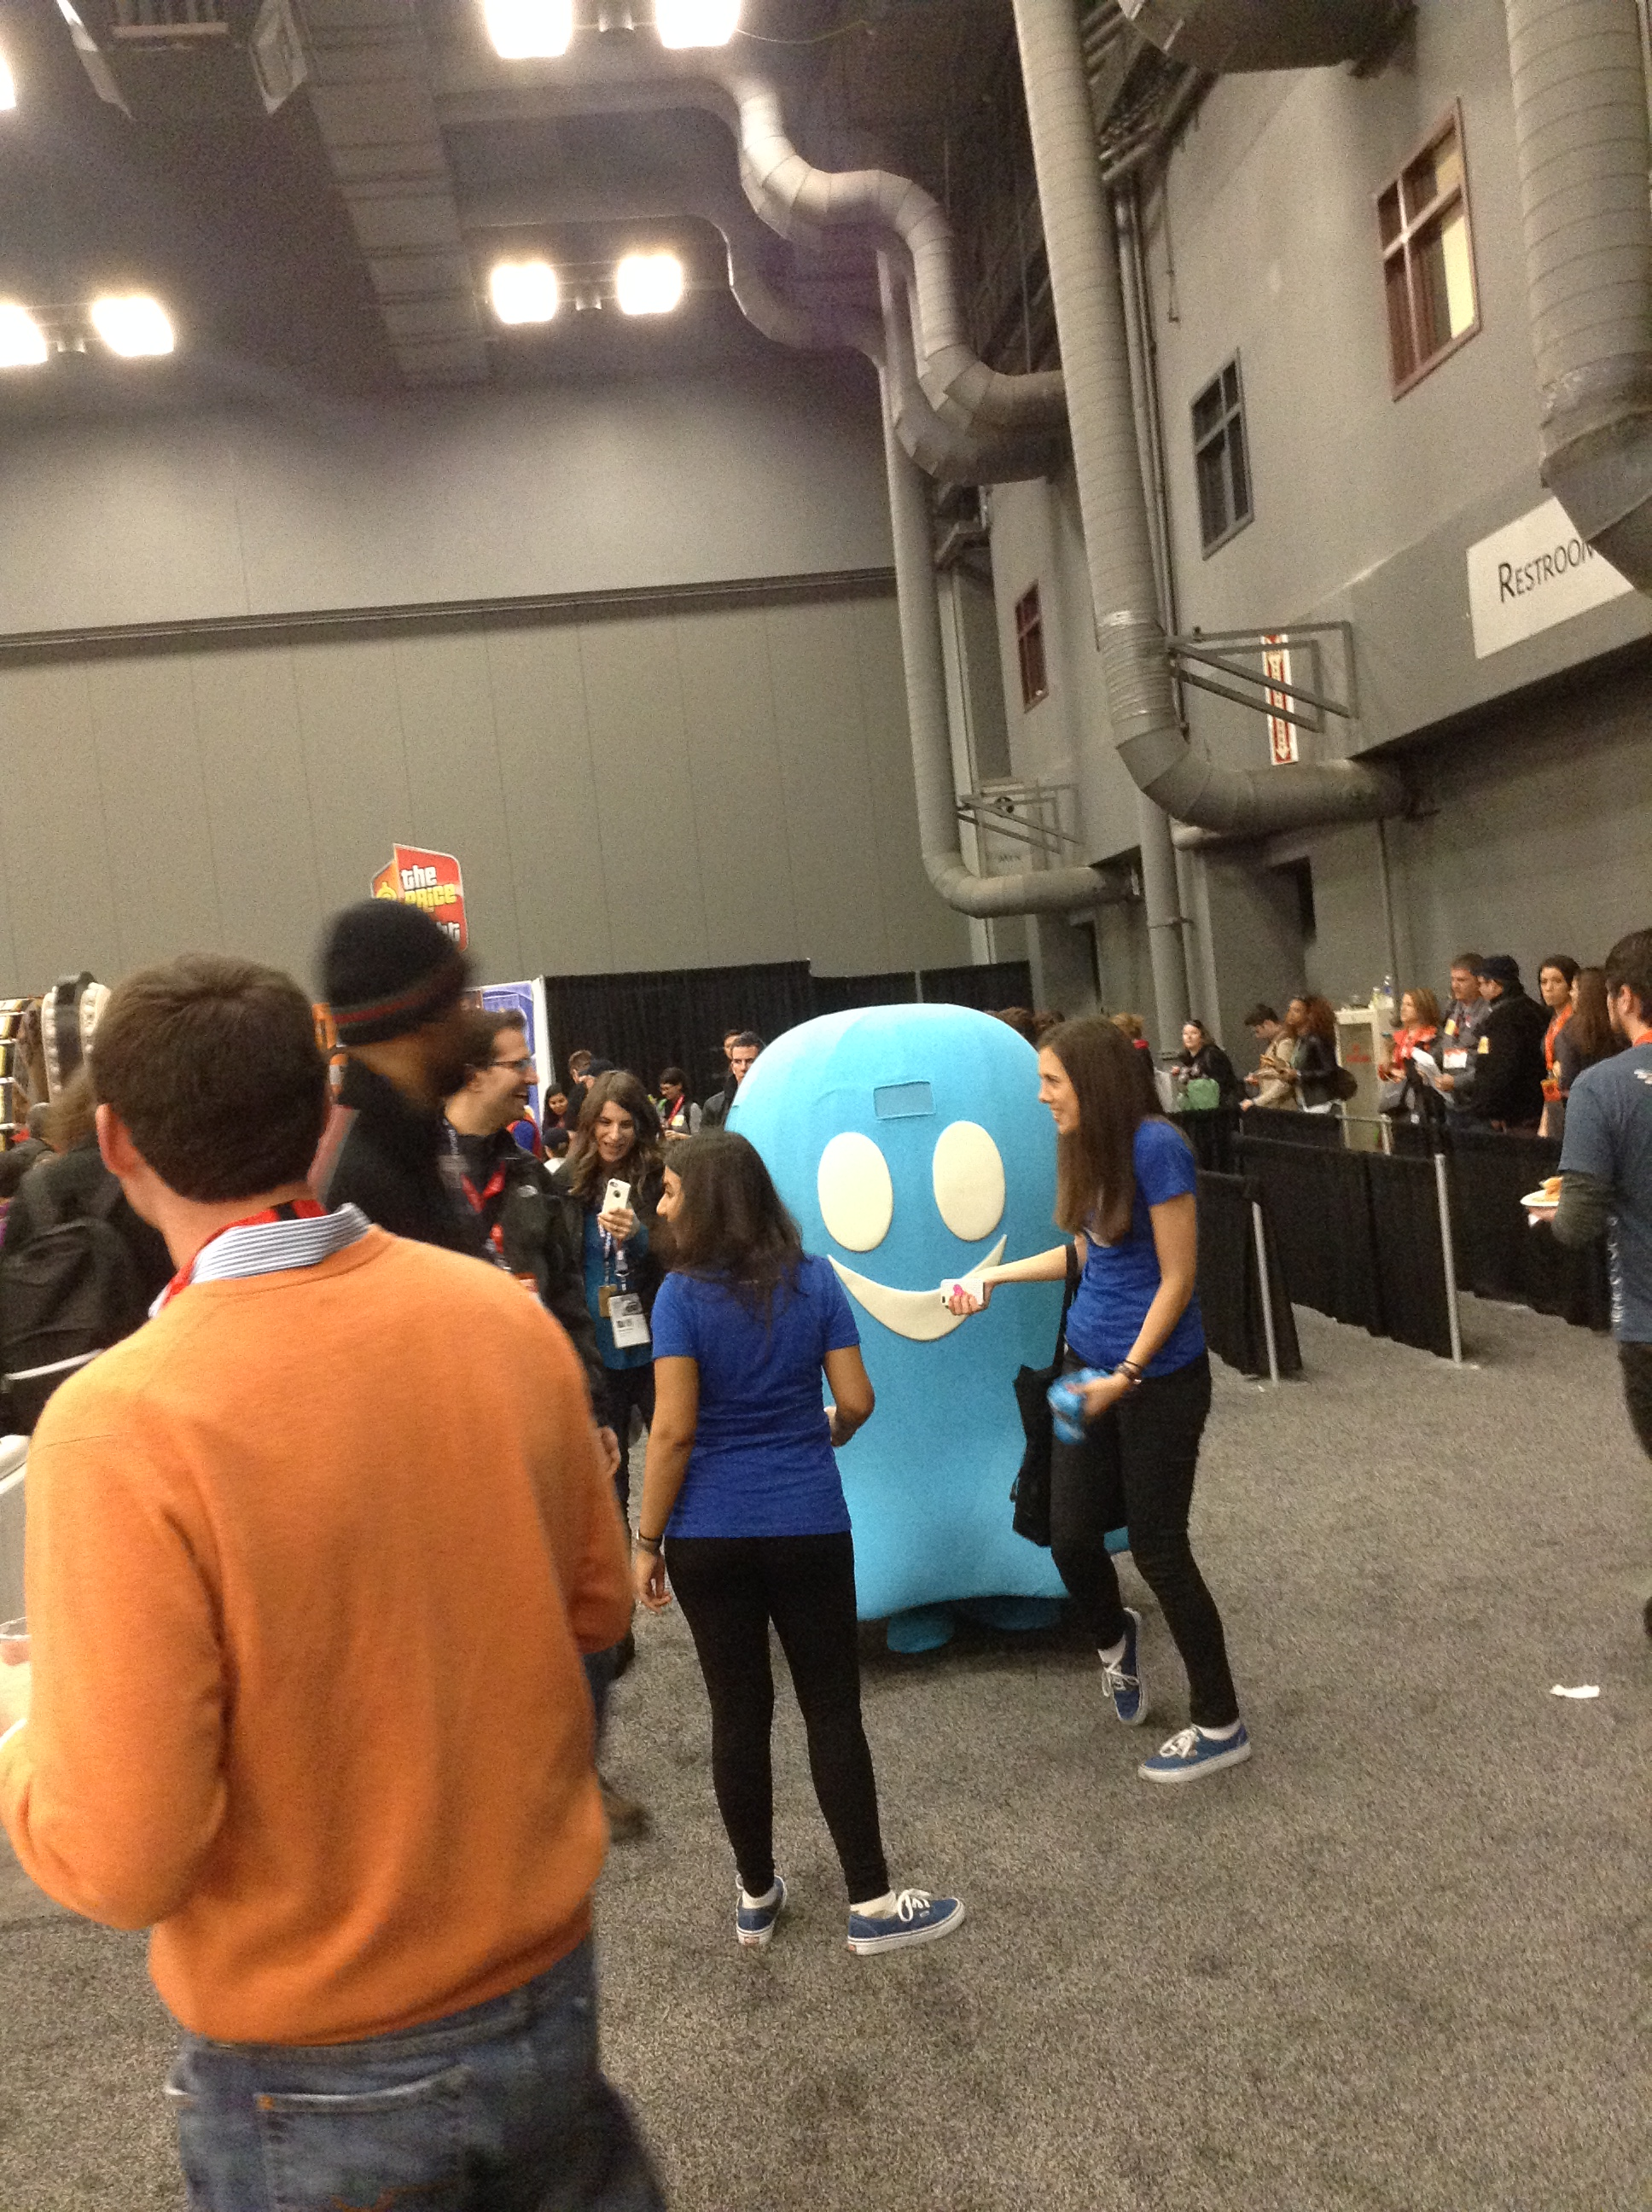 Ghostery made an impact with their stress ball give aways.